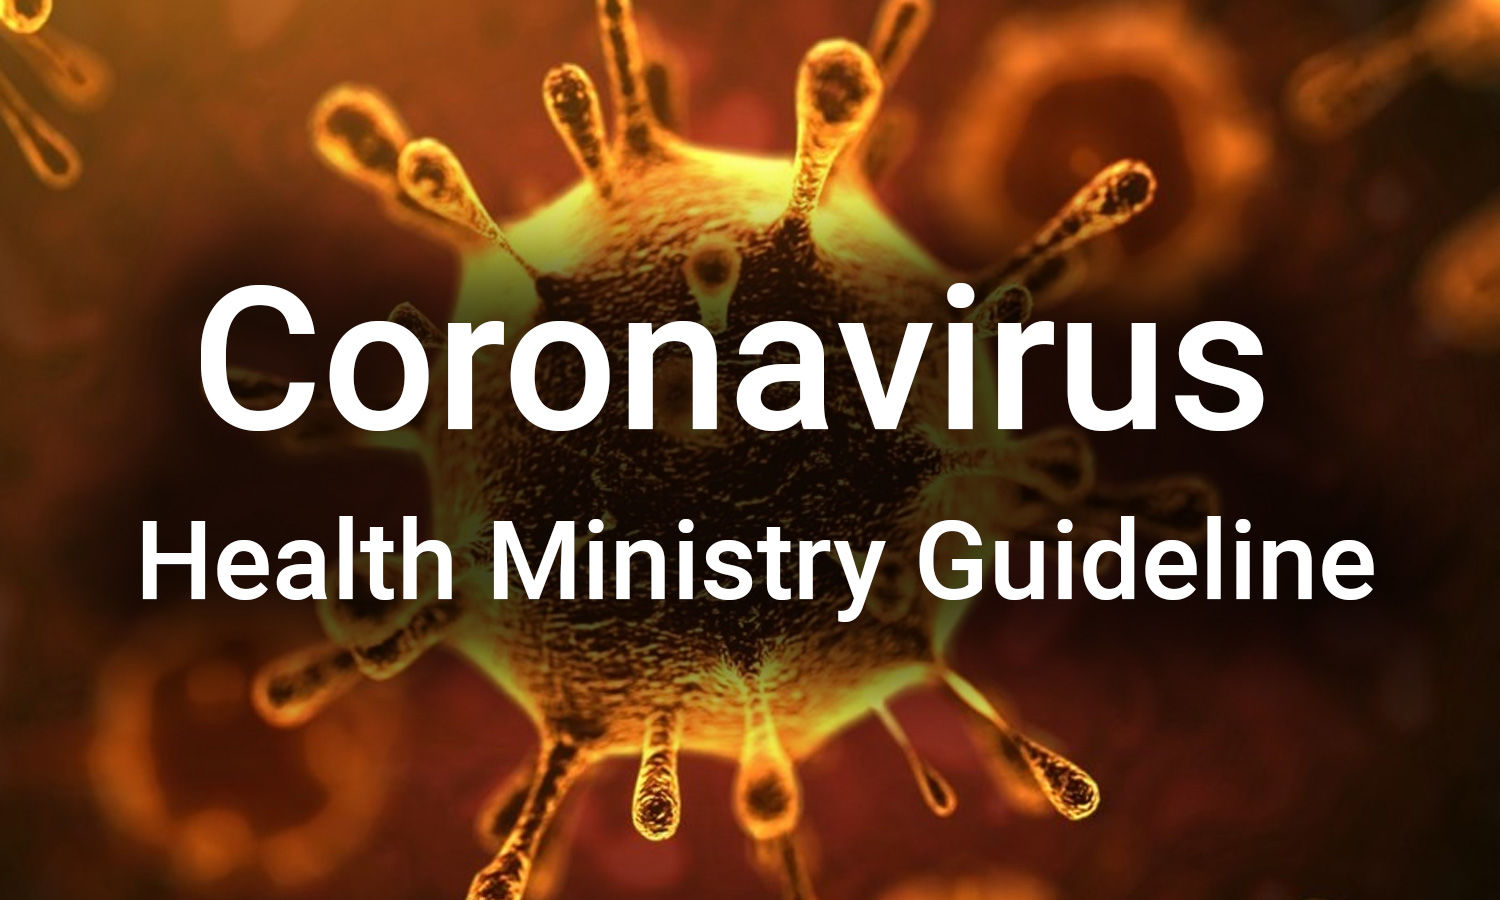 COVID-19 update: Union Health Ministry guidelines for management of novel coronavirus (nCoV)